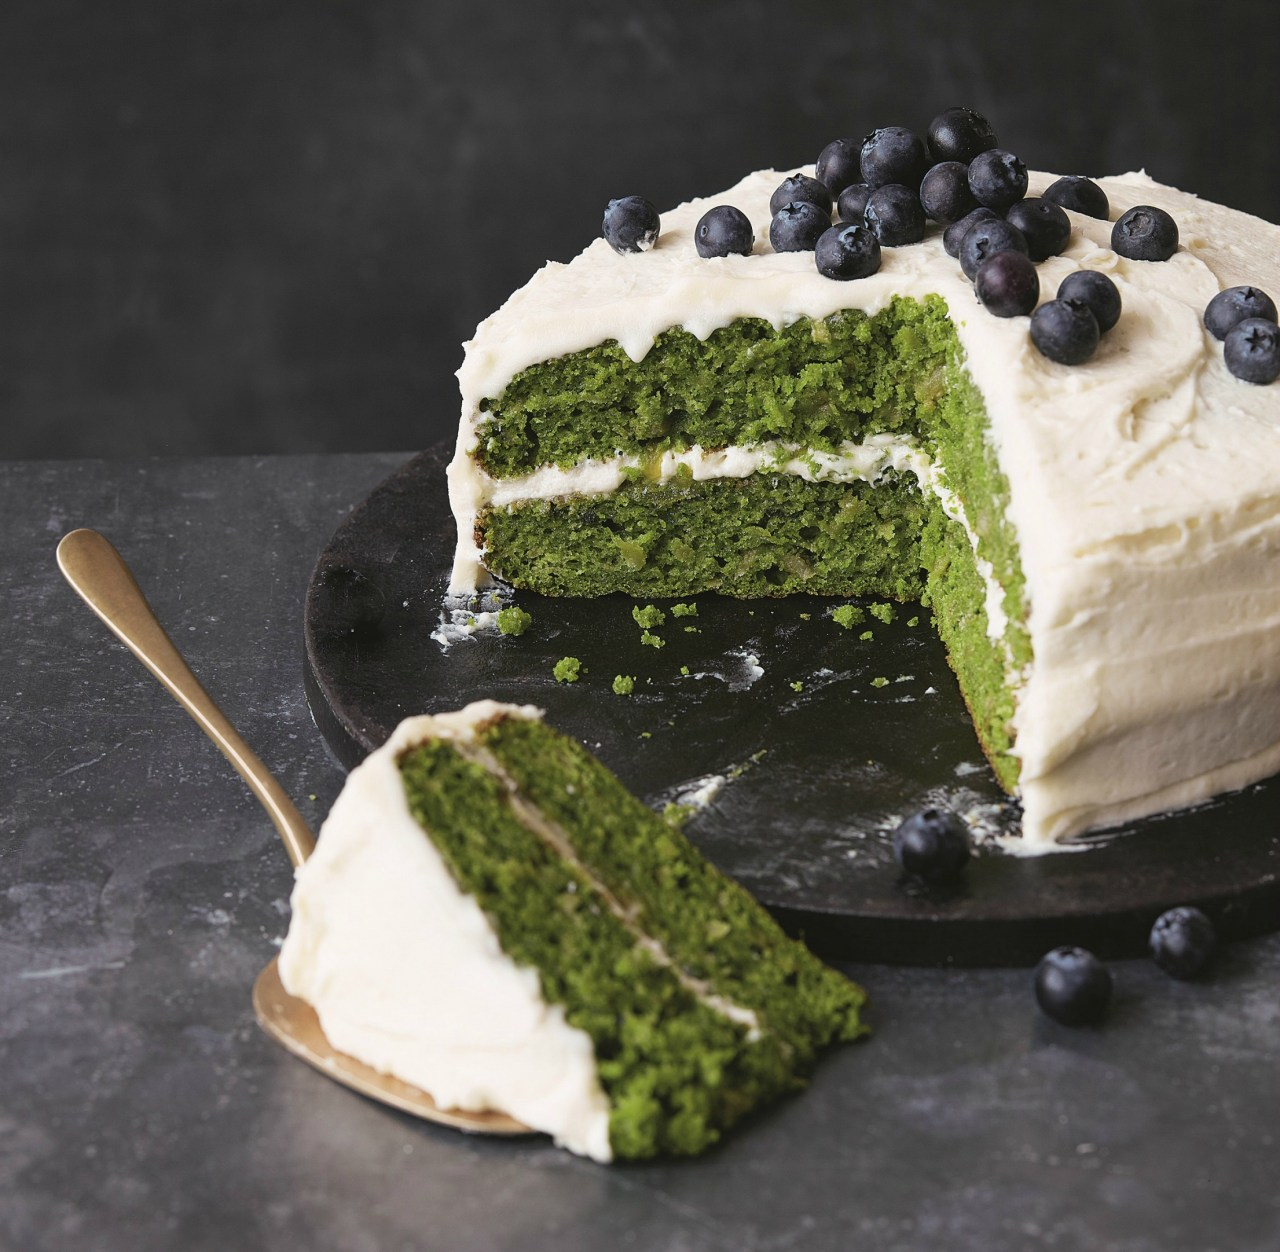 A delicate apple-flavoured sponge, topped with a zesty apple icing and, although there is quite a bit of kale, the flavour doesn't overpower the other ingredients. From the debut cookbook by Kate Hackworthy.